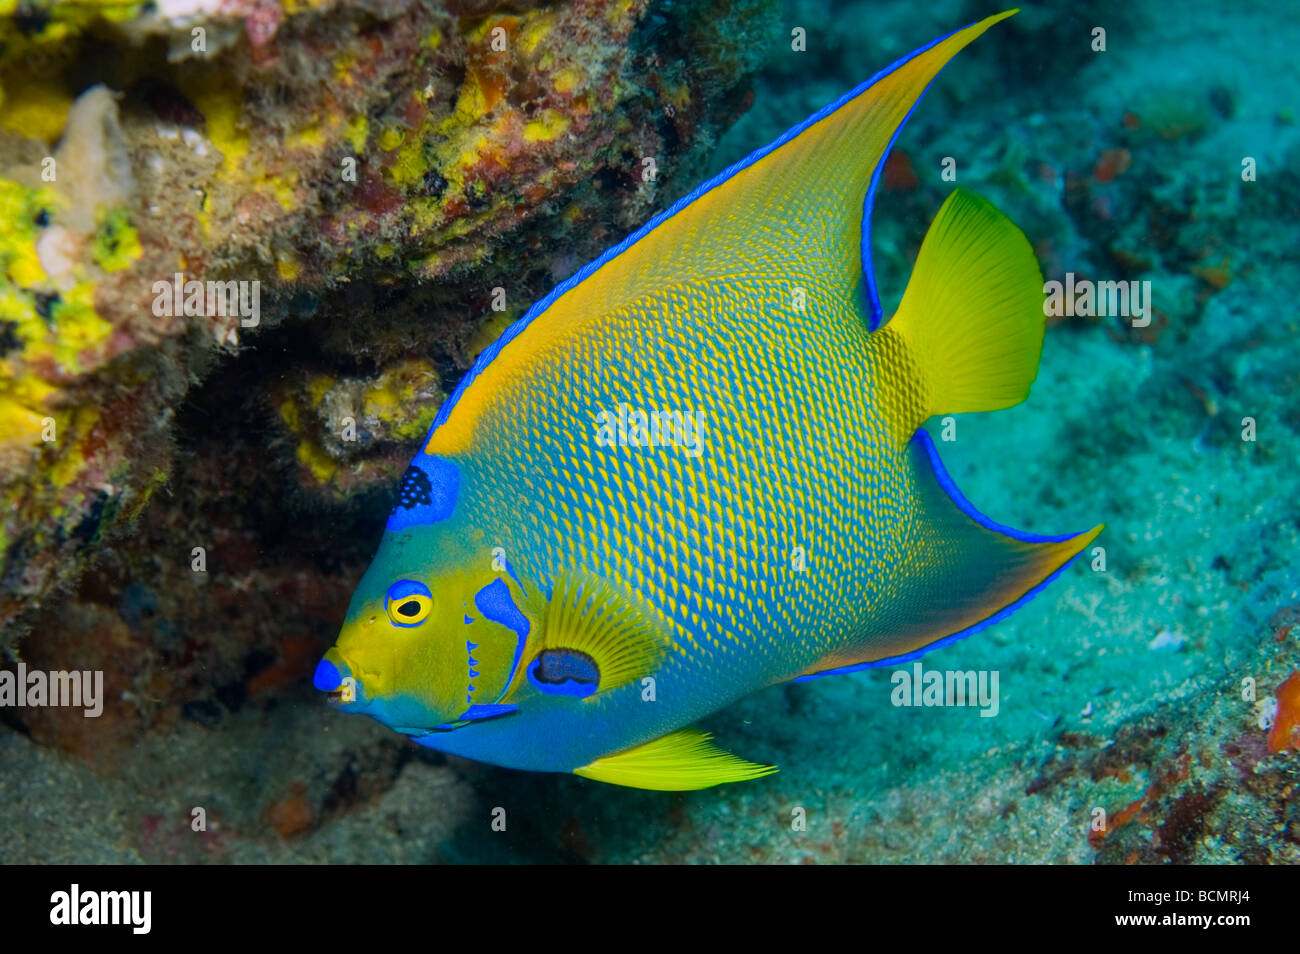 Queen Angelfish (Holacanthus ciliaris) photographed in the Breakers Reef in Palm Beach, FL - Stock Image